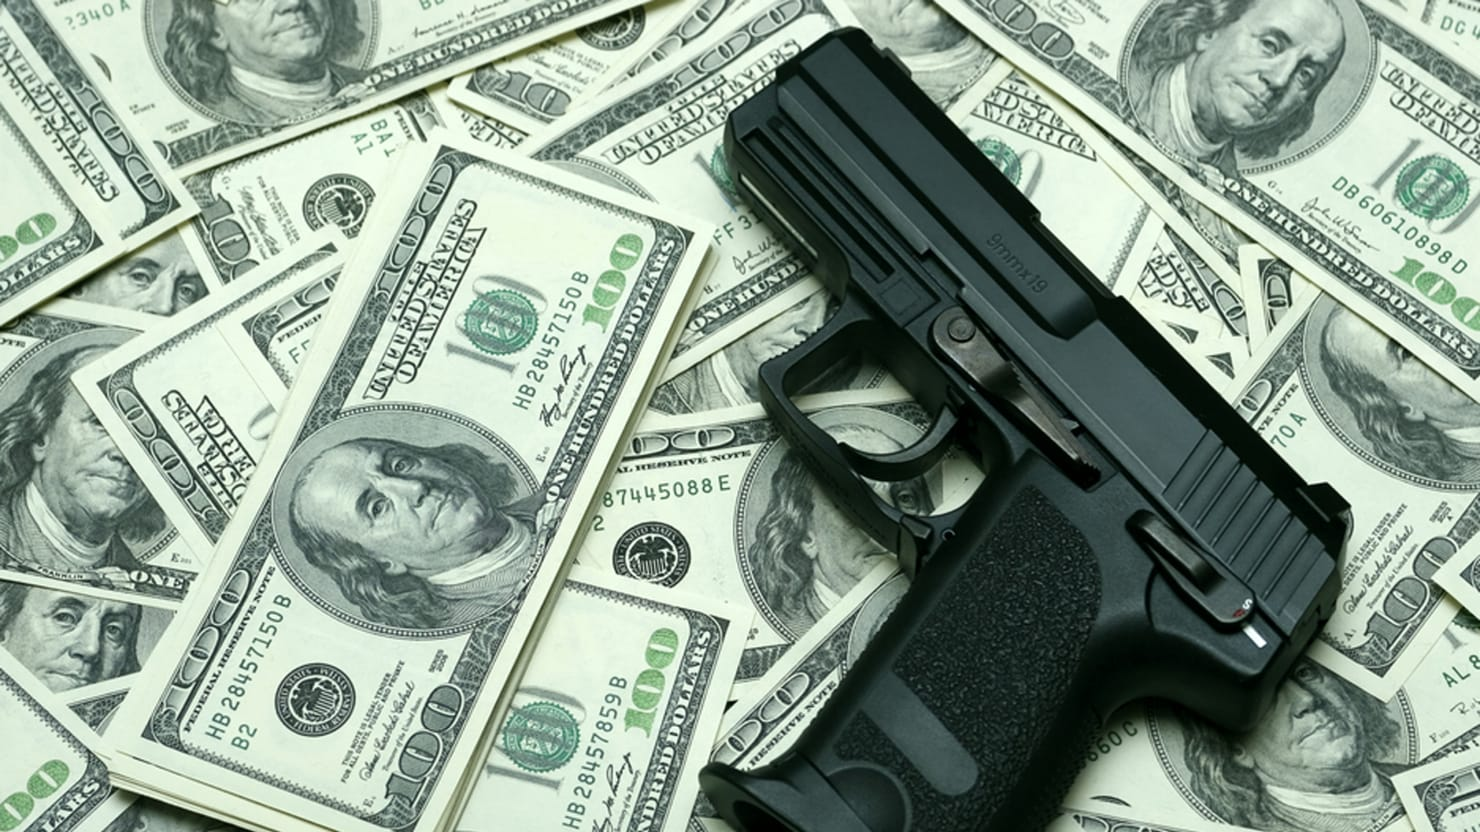 Falling Money Wallpaper Hd Money And Guns How We Escape Our Existential Dread